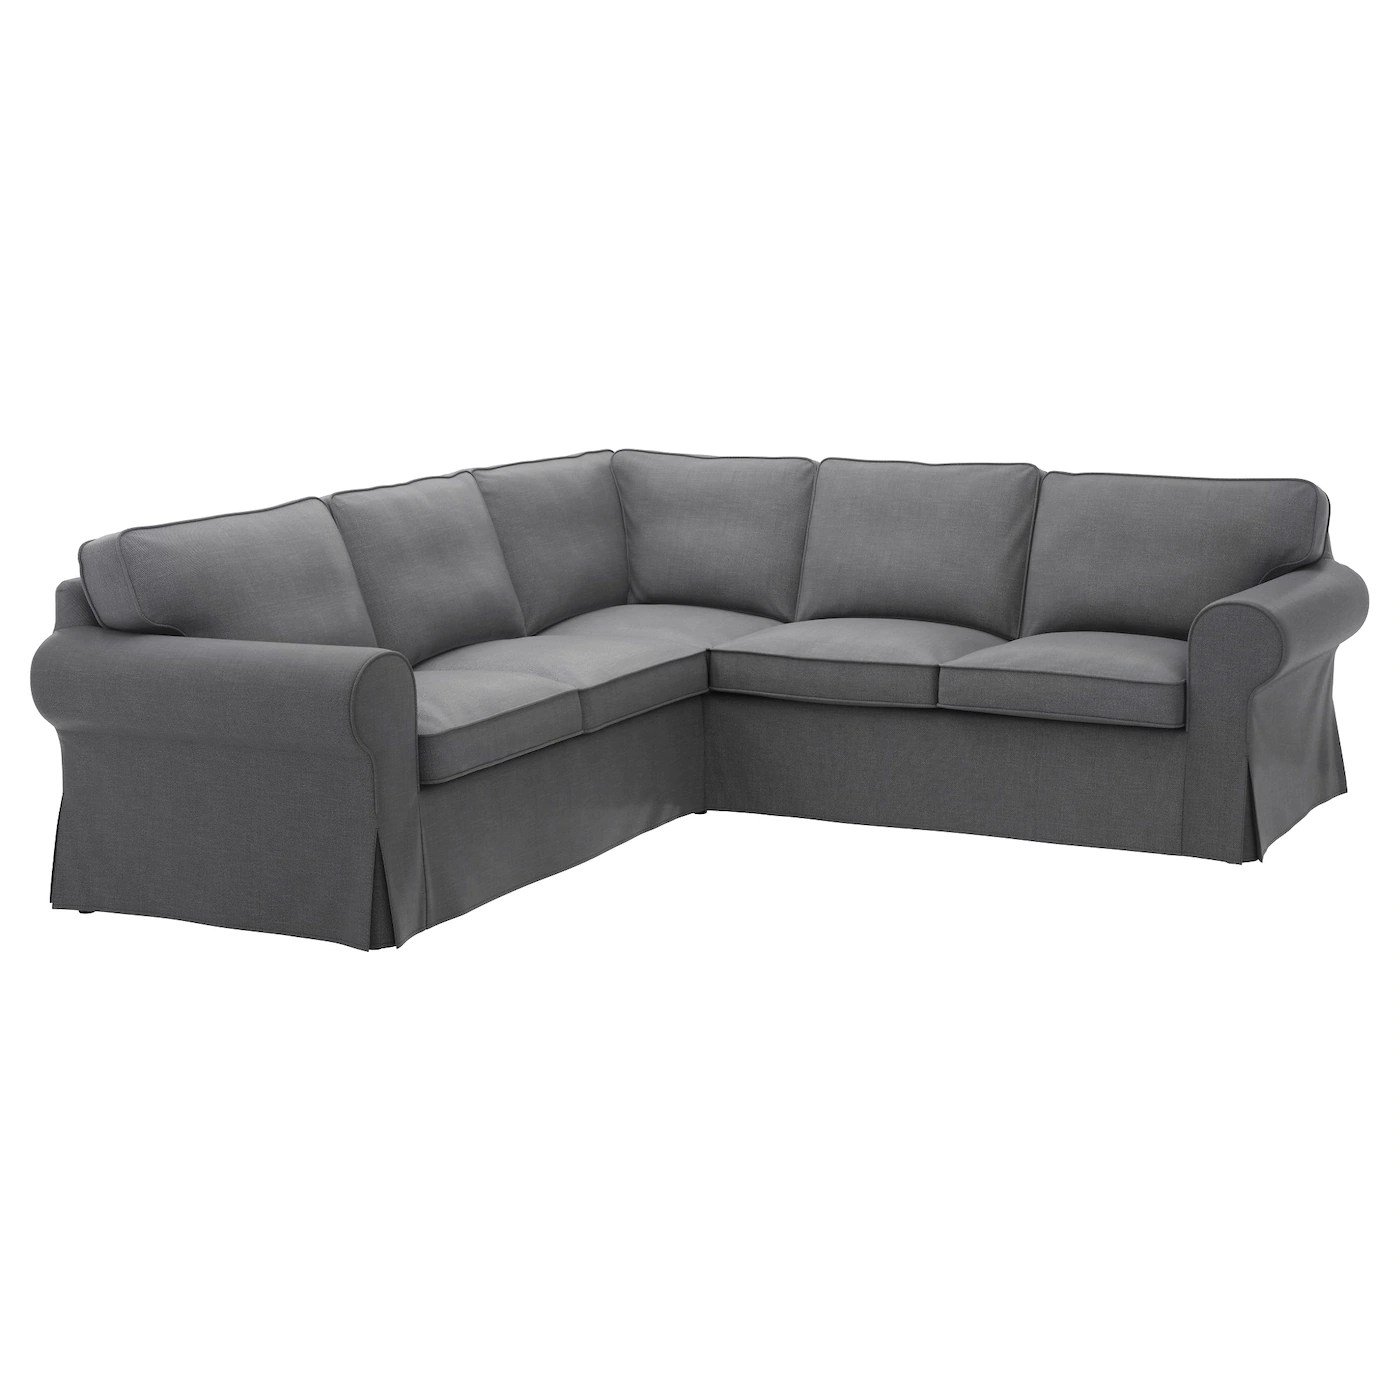 large dark grey corner sofa coaster futon bed ektorp 4 seat nordvalla ikea